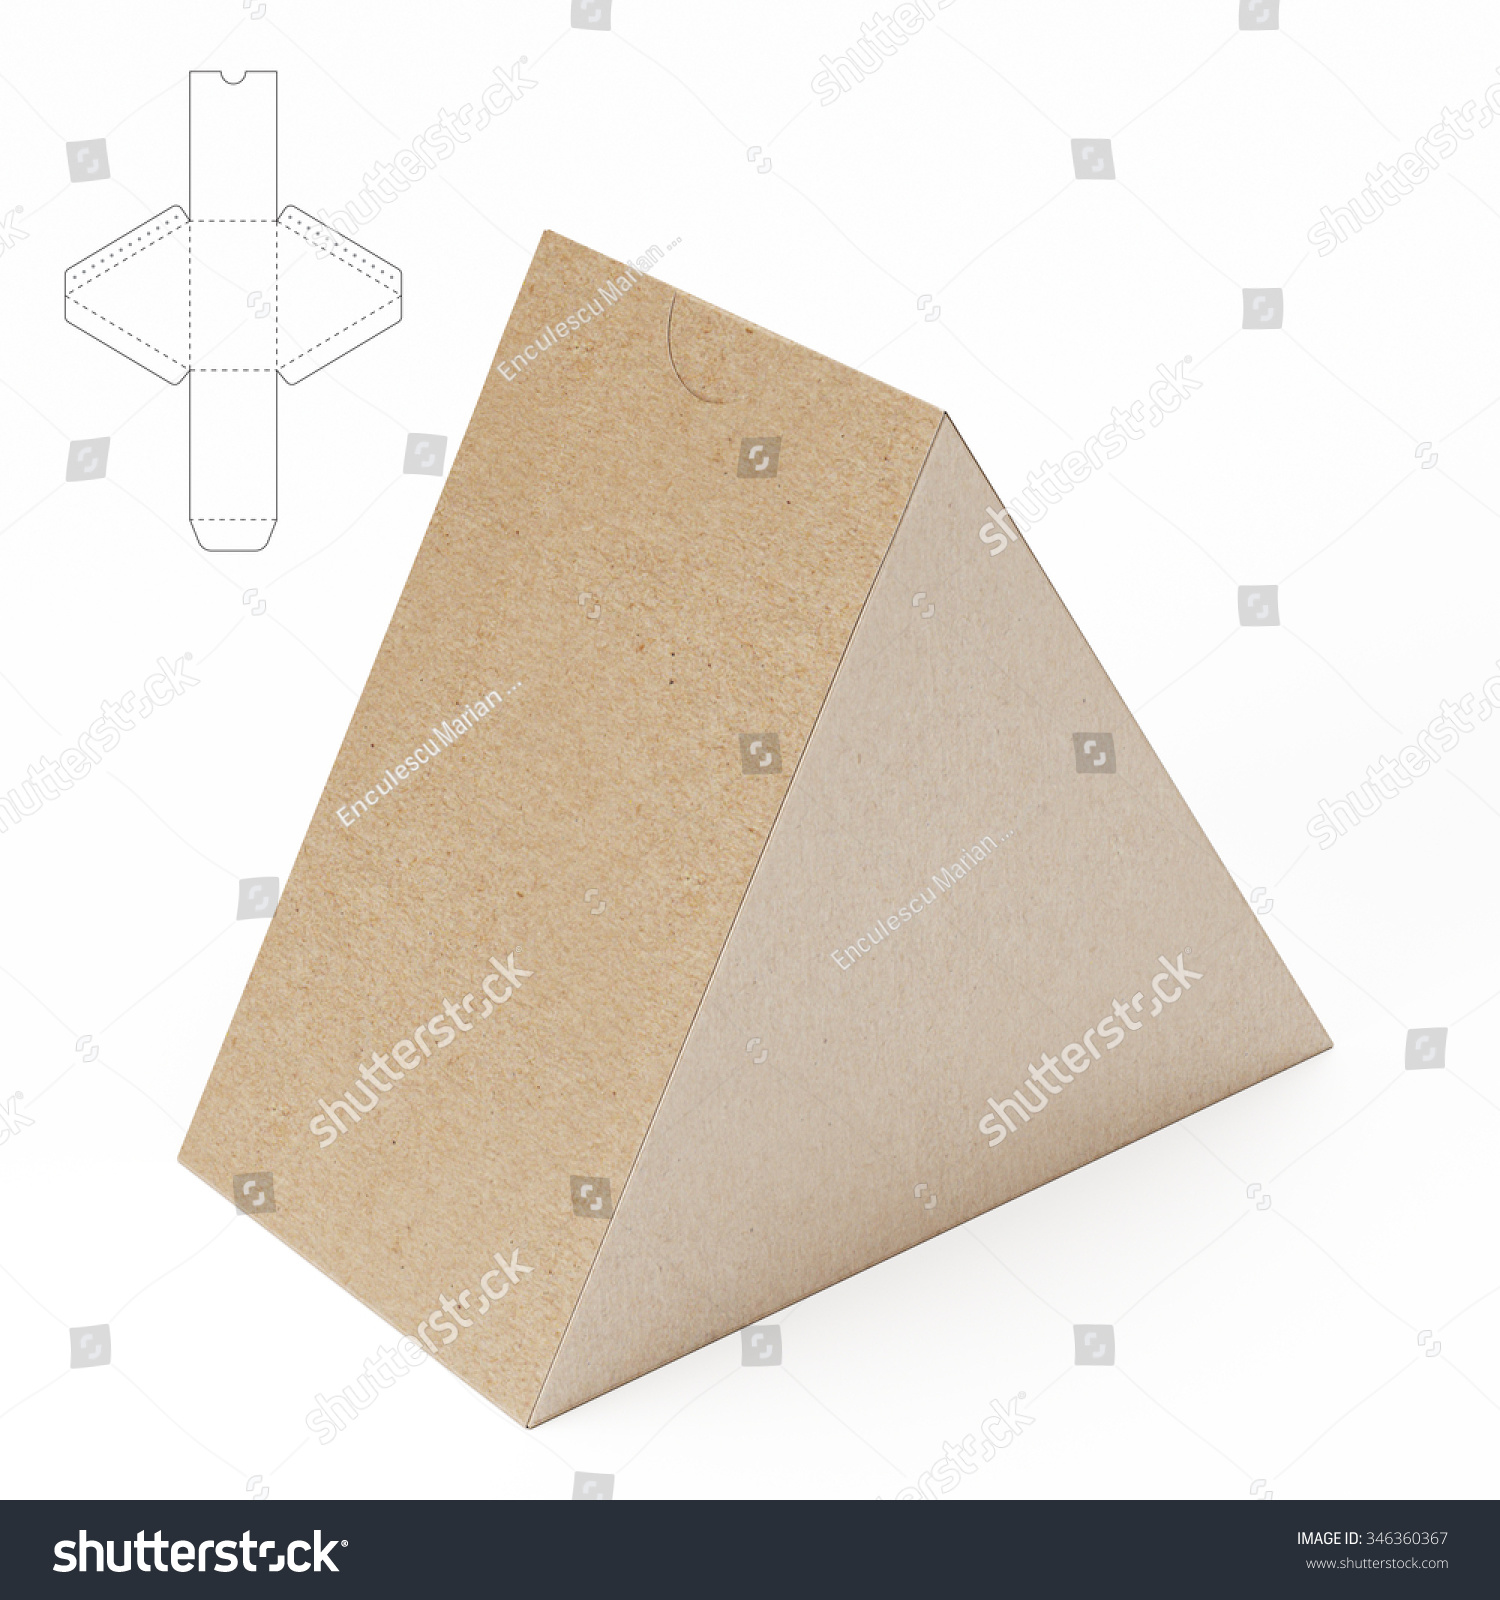 Triangle Box Template. triangular tube box with zipper seal and ...